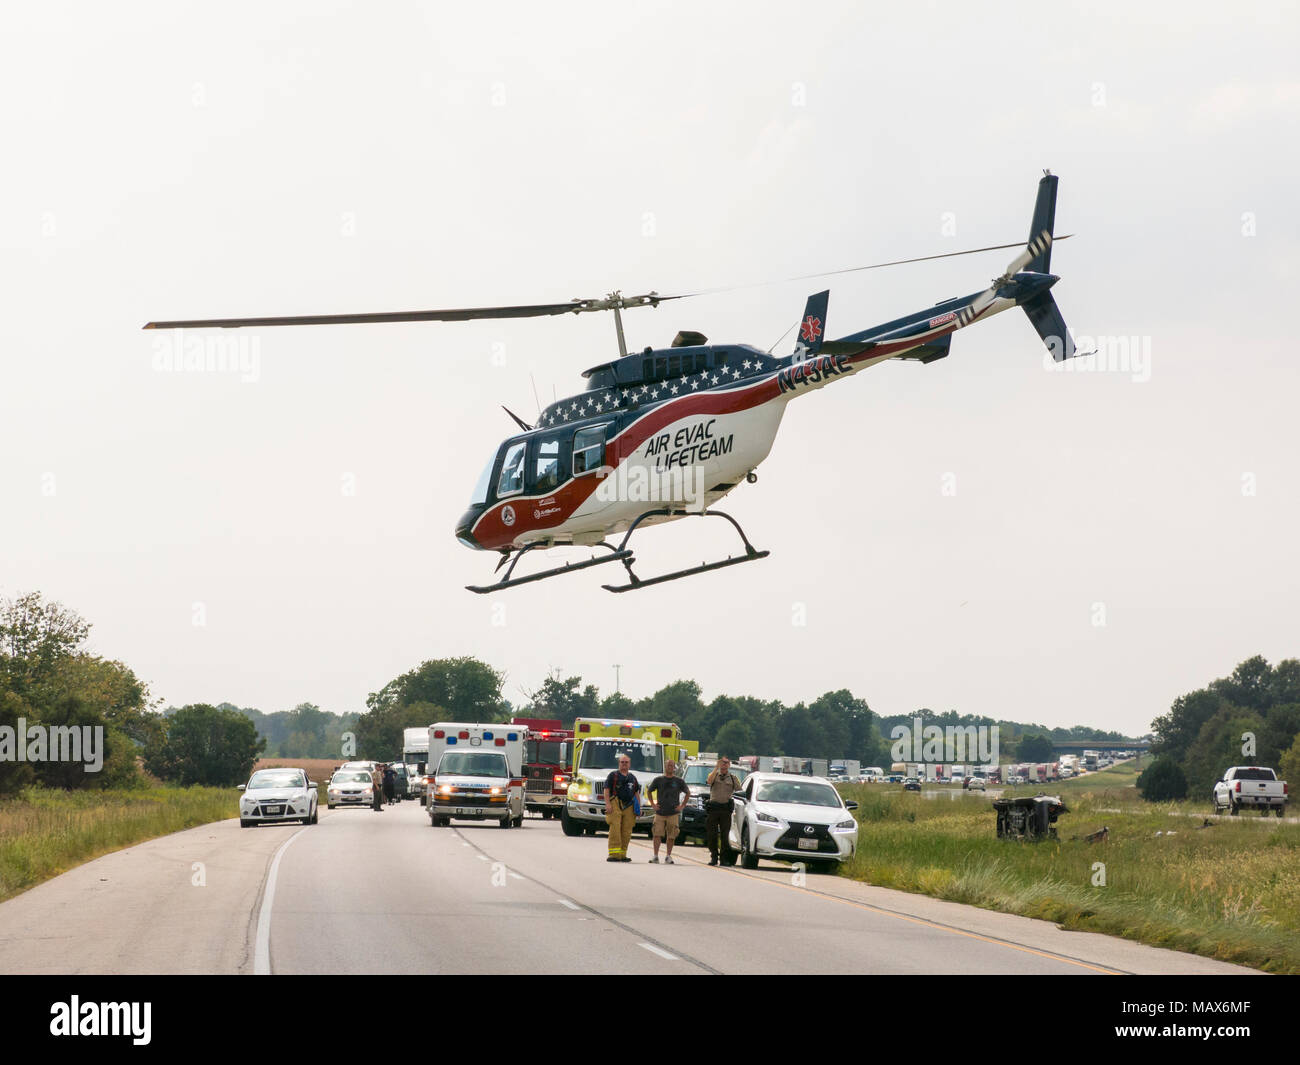 Motor Vehicle Accident Stock Photos & Motor Vehicle Accident Stock